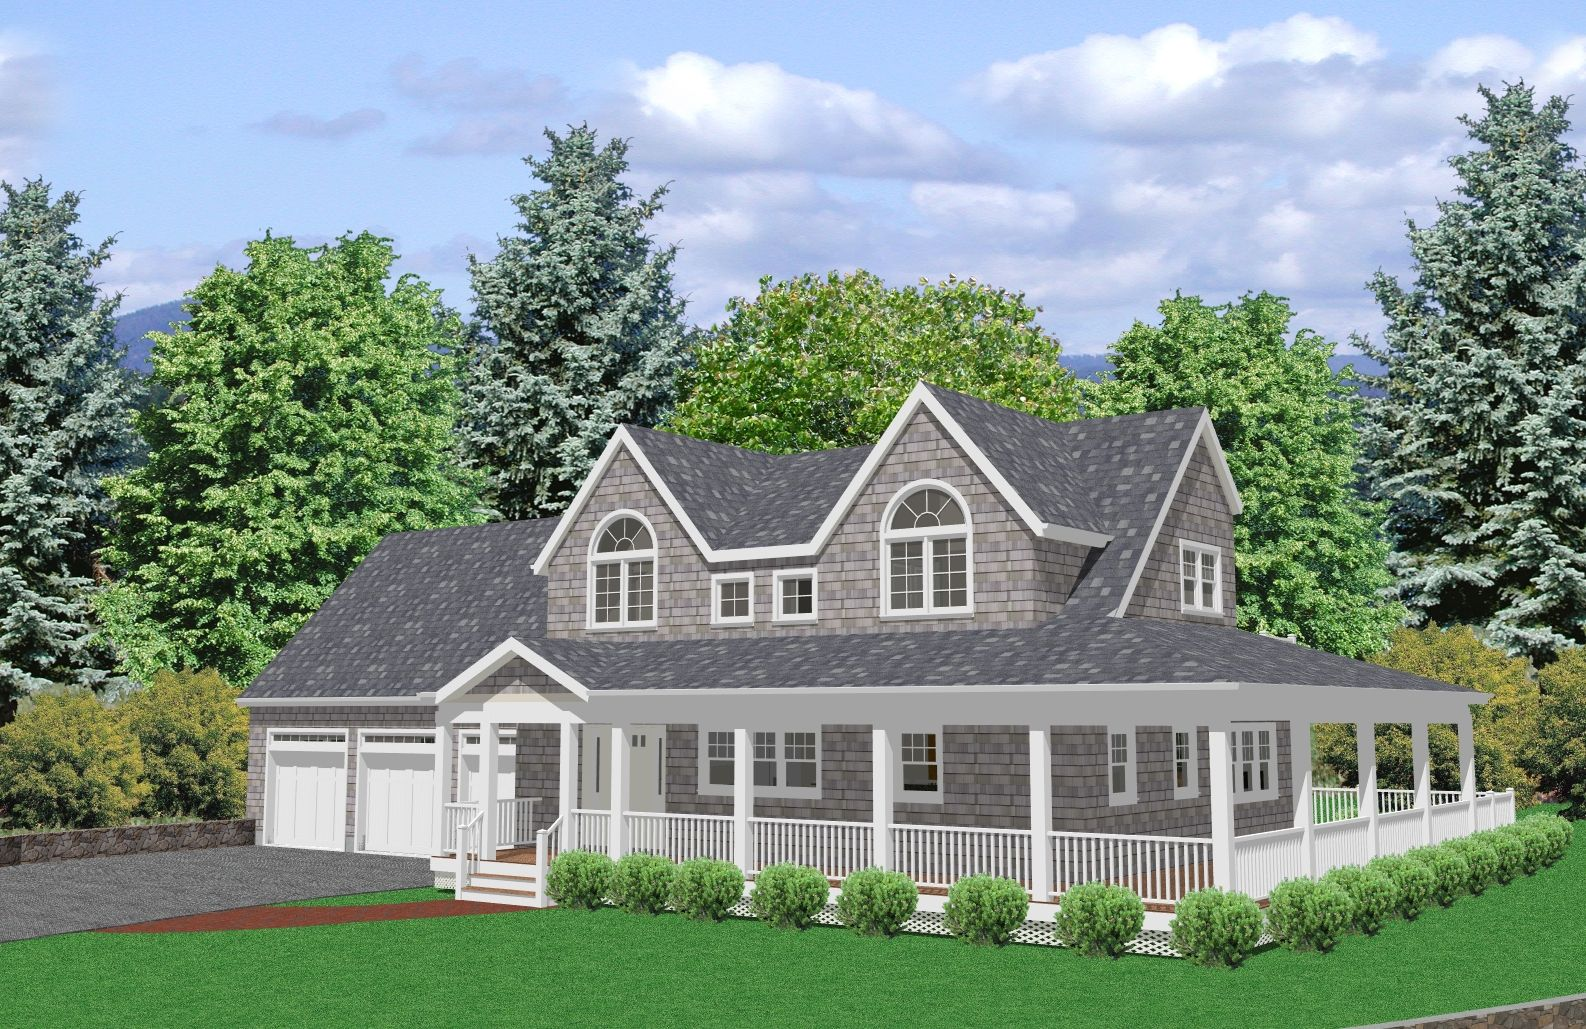 Cape cod style house plans 2027 sq ft 3 bedroom cape cod for Cape cod style house plans